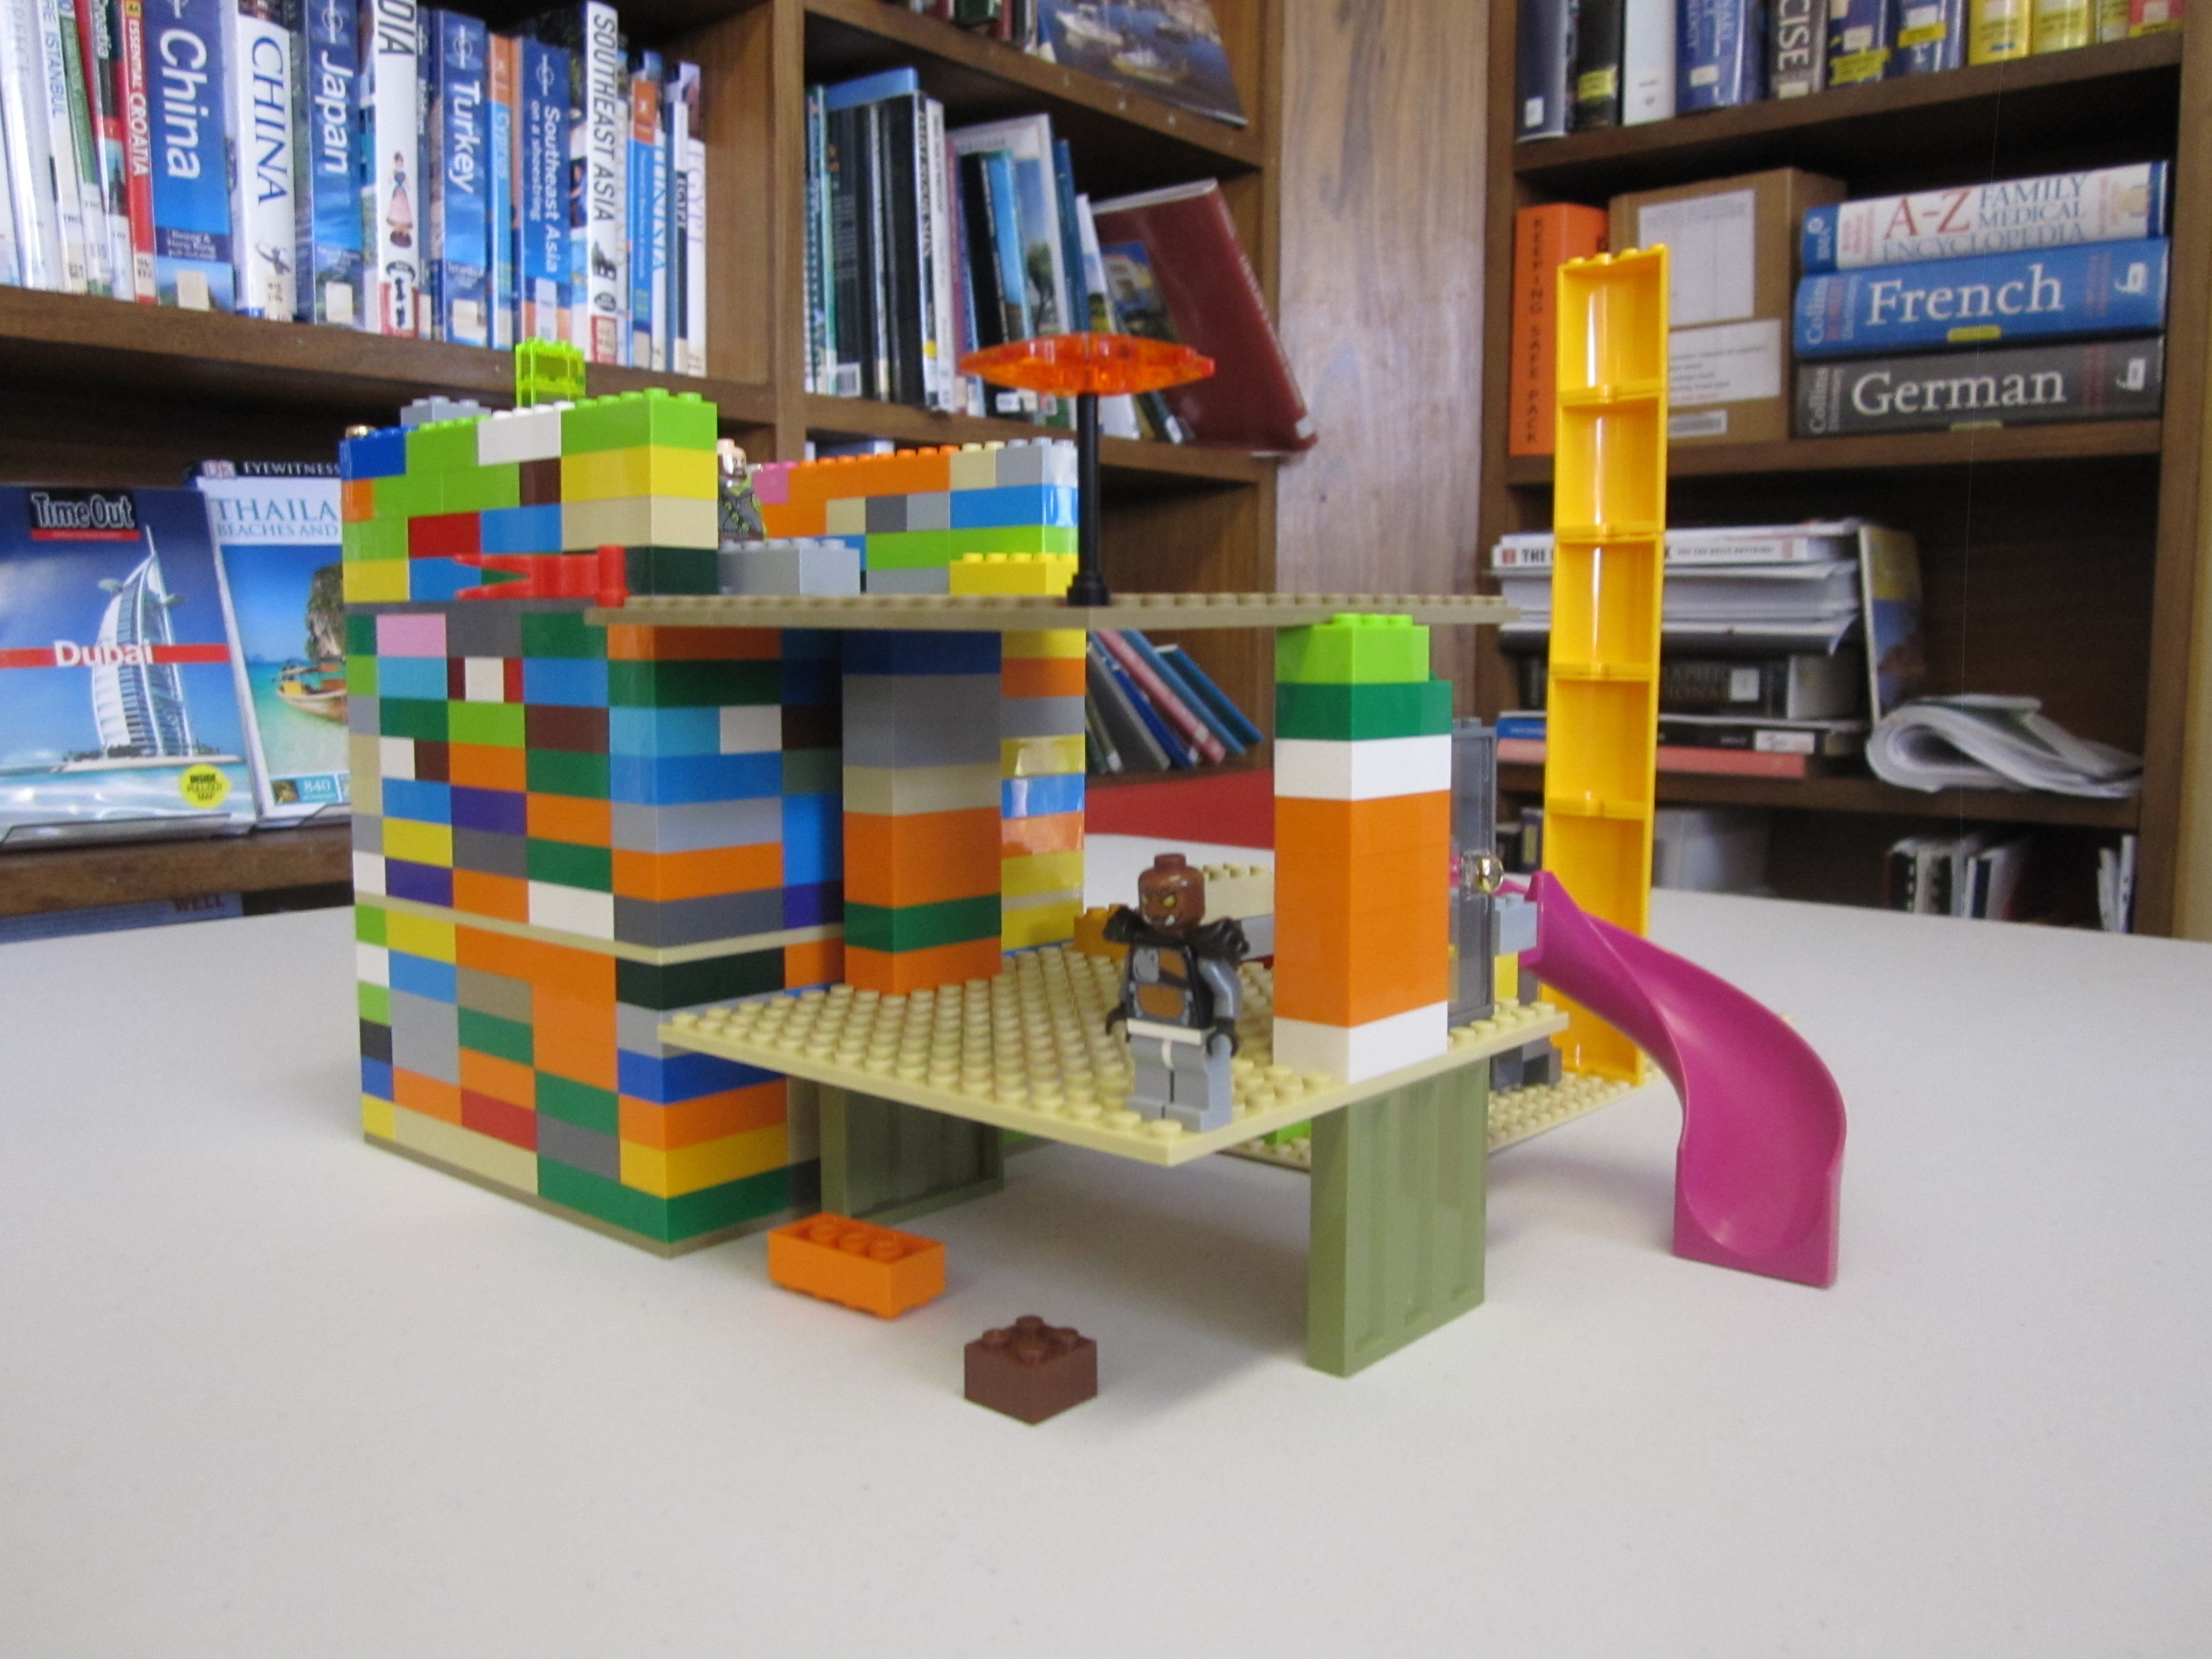 LEGO table available to use on Mondays during Library opening hours.